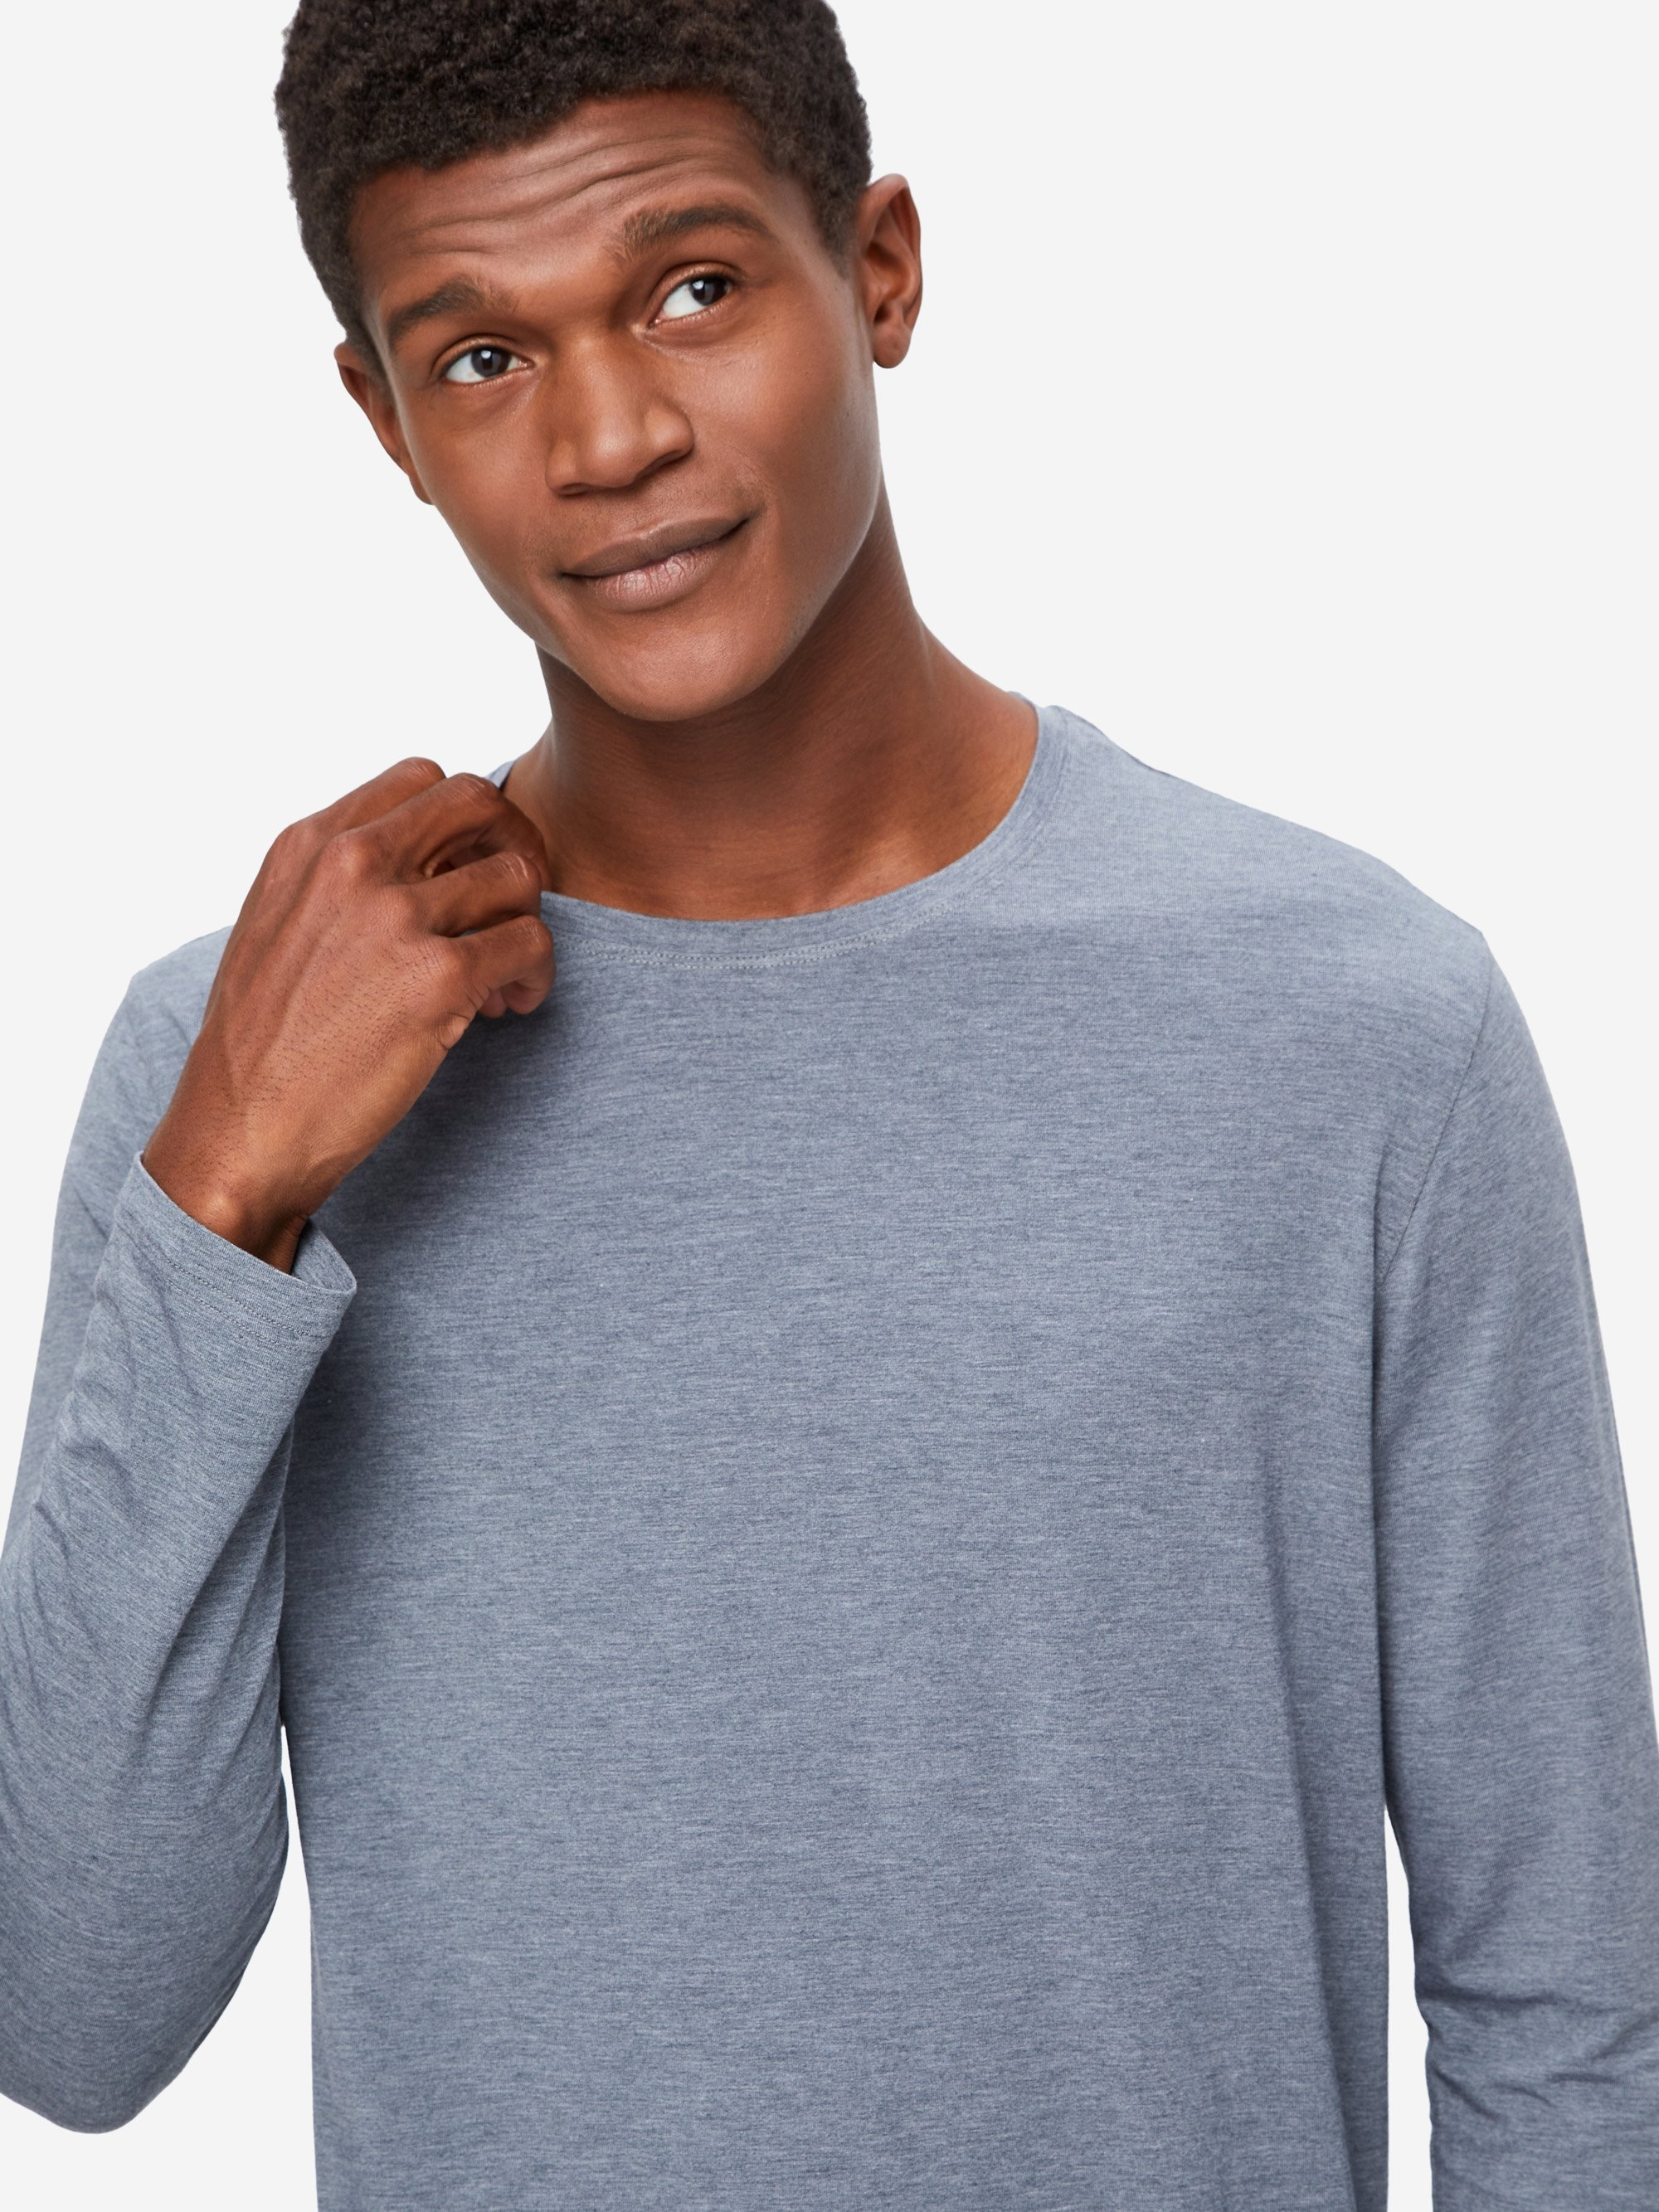 Men's Long Sleeve T-Shirt Marlowe Micro Modal Stretch Charcoal